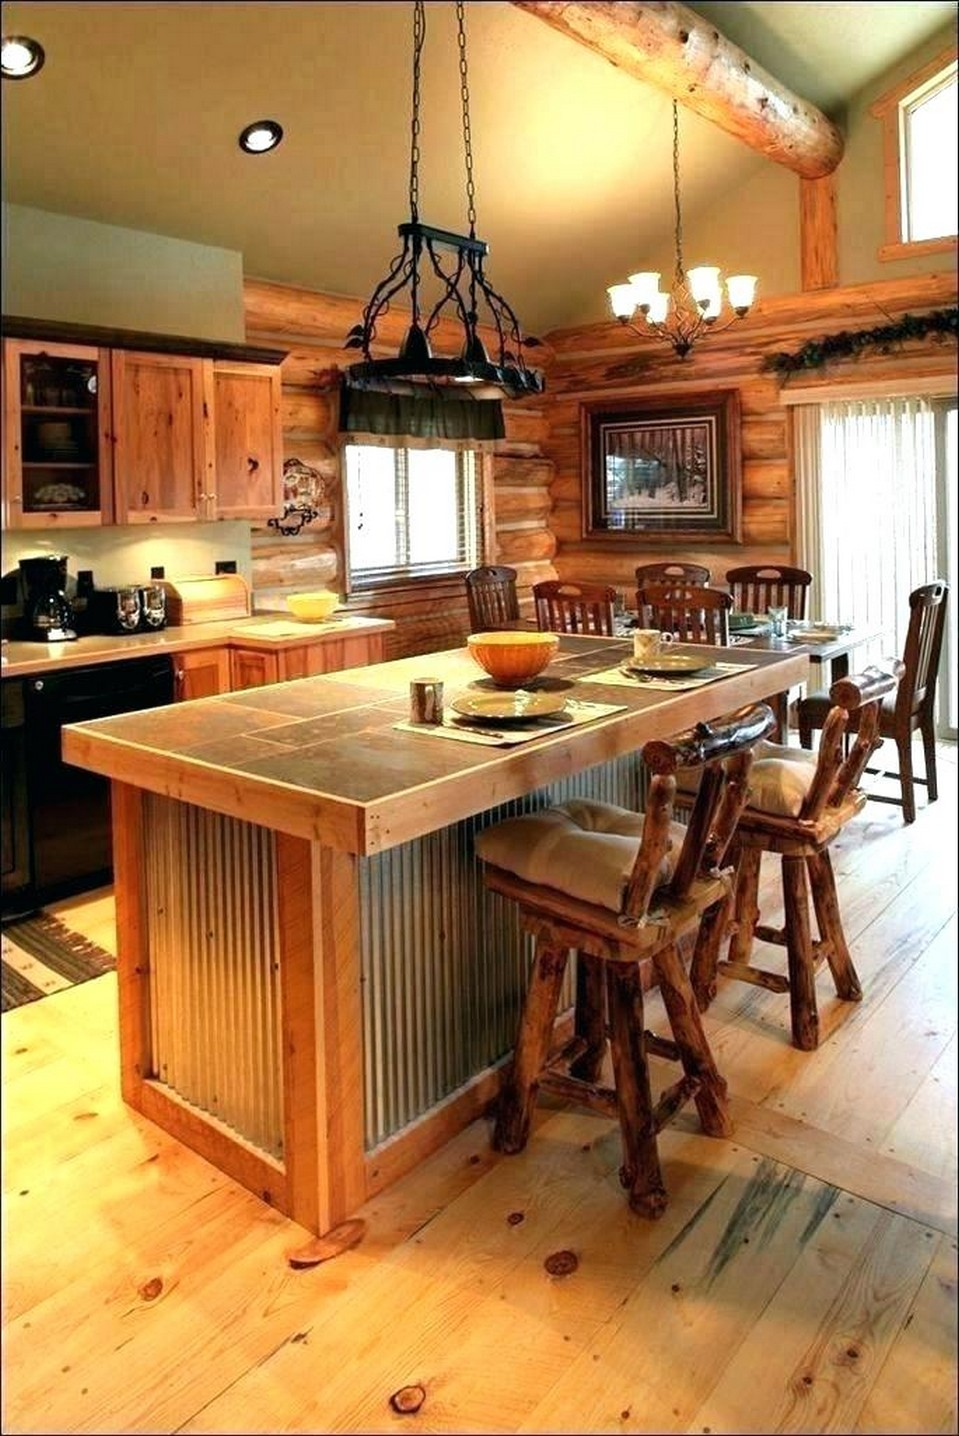 Incomparable Renovation Inspiration of Kitchen You Must See